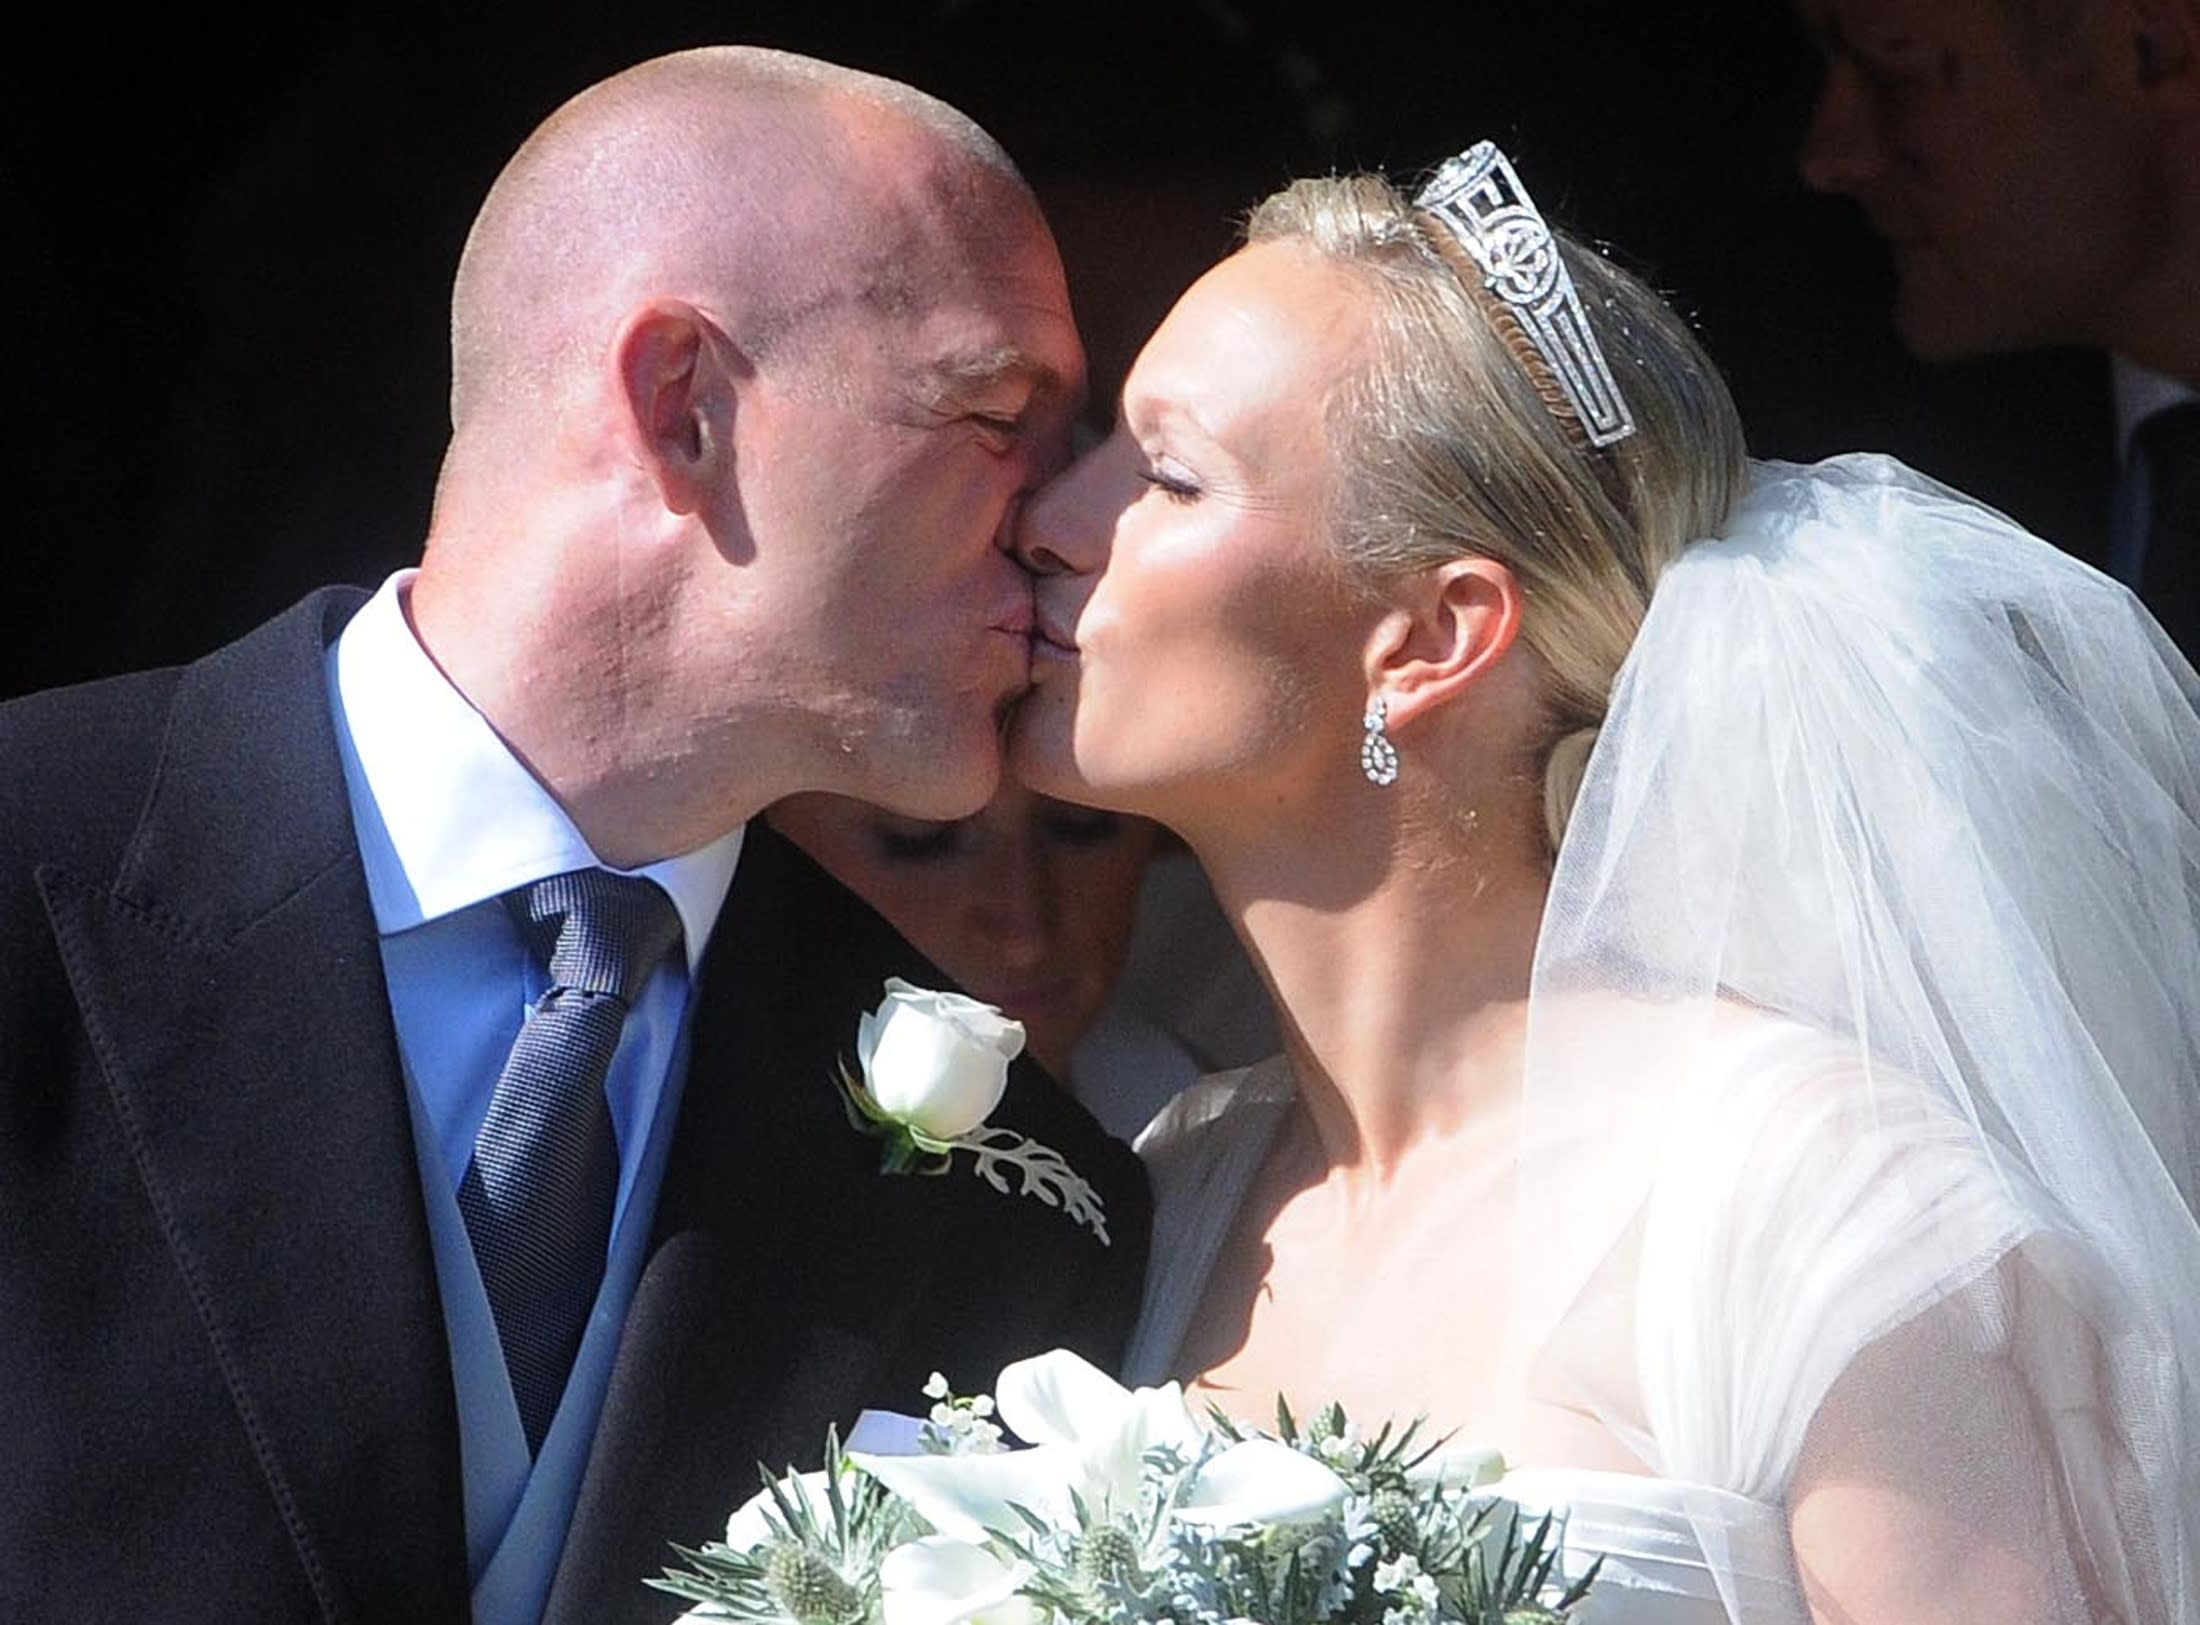 Britain's Zara Philips, the eldest granddaughter of Queen Elizabeth, kisses her husband rugby captain Mike Tindall, after their marriage at Canongate Kirk in Edinburgh, Scotland July 30, 2011.   REUTERS/David McNie/Pool          (BRITAIN - Tags: ENTERTAINMENT SOCIETY ROYALS SPORT IMAGES OF THE DAY)